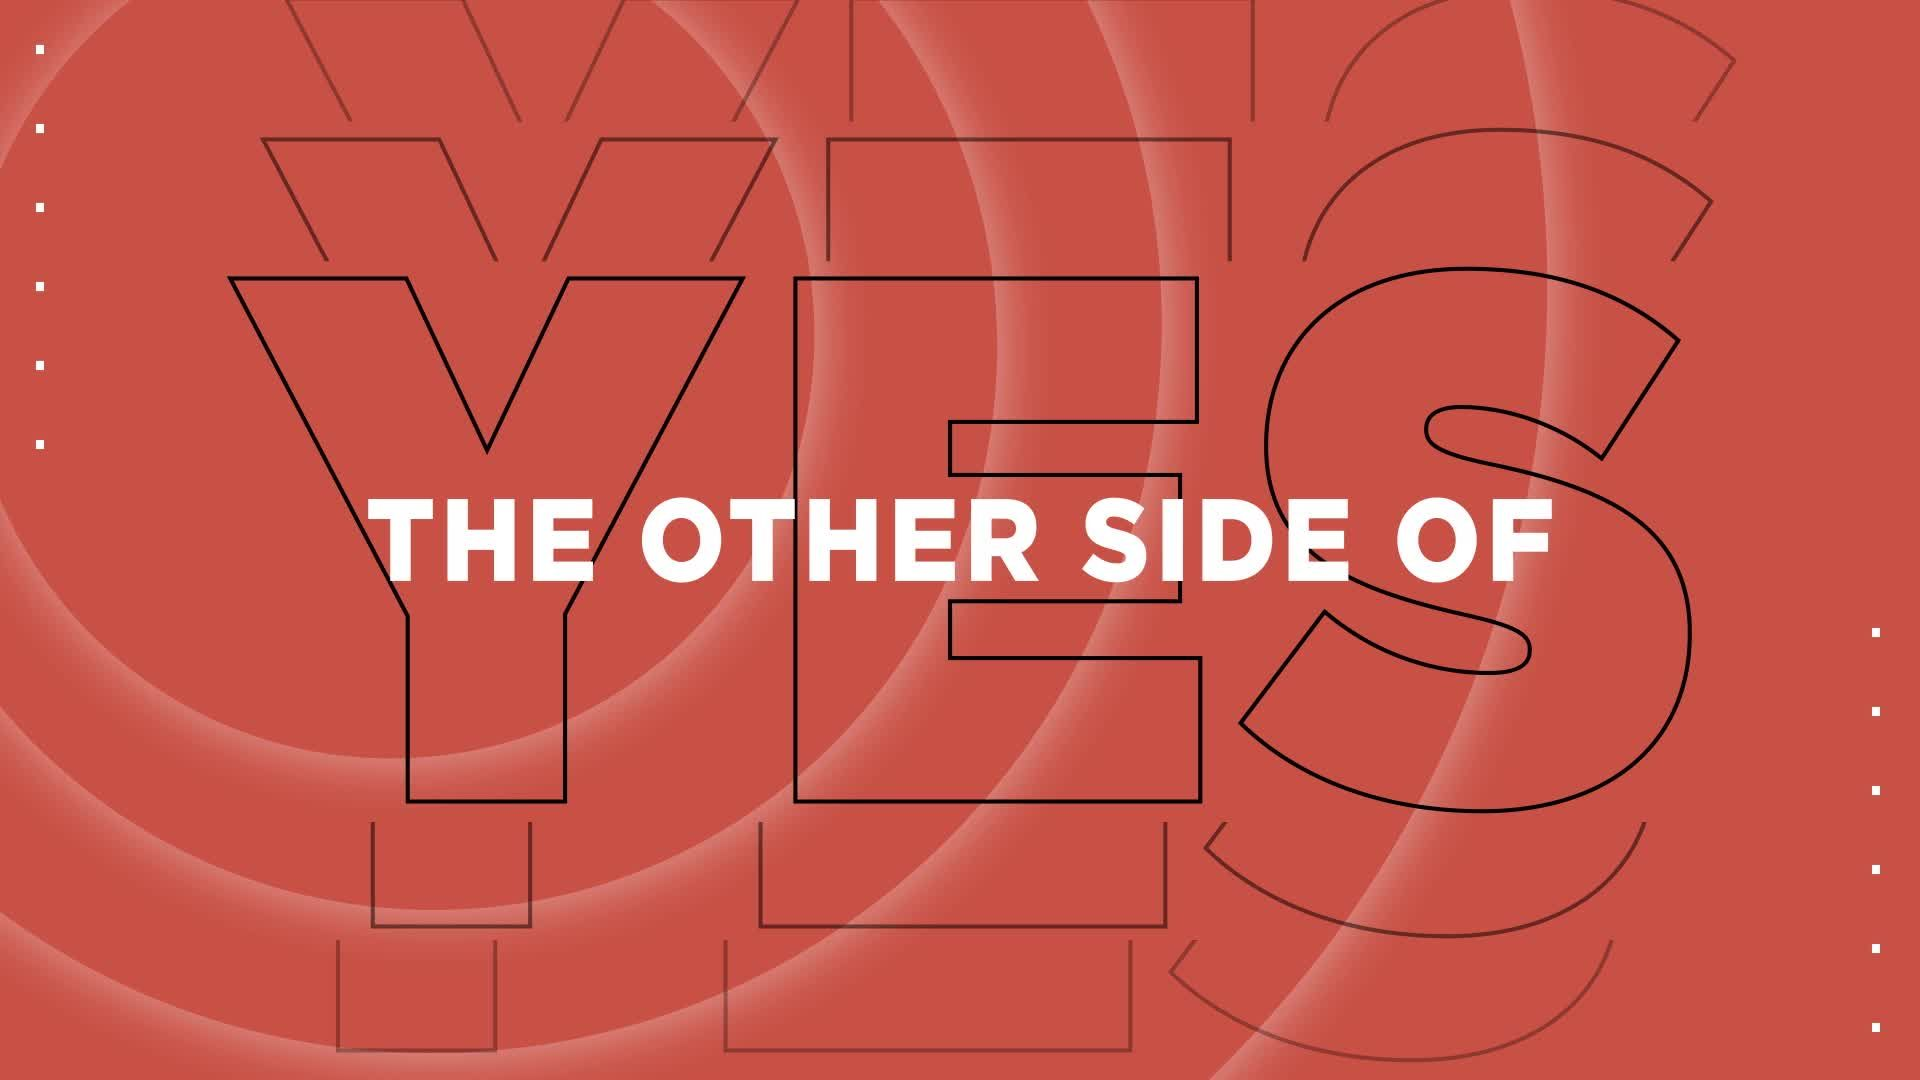 The Other Side of Yes